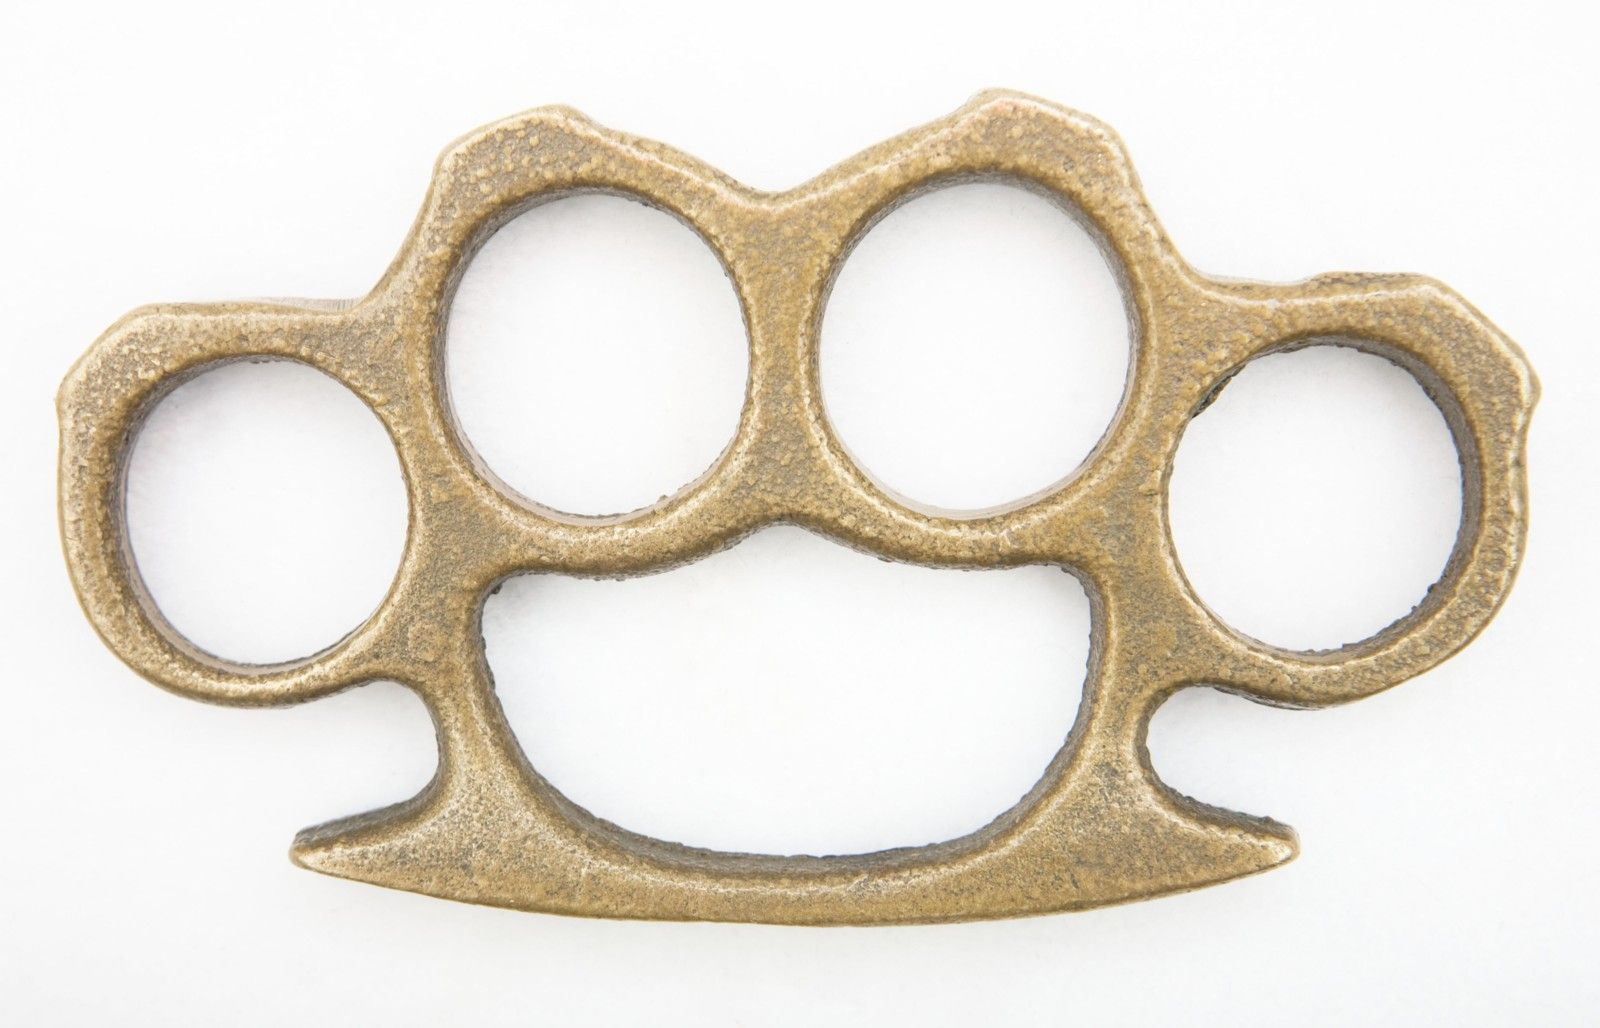 Apparently brass knuckles are illegal, so- you don't have them